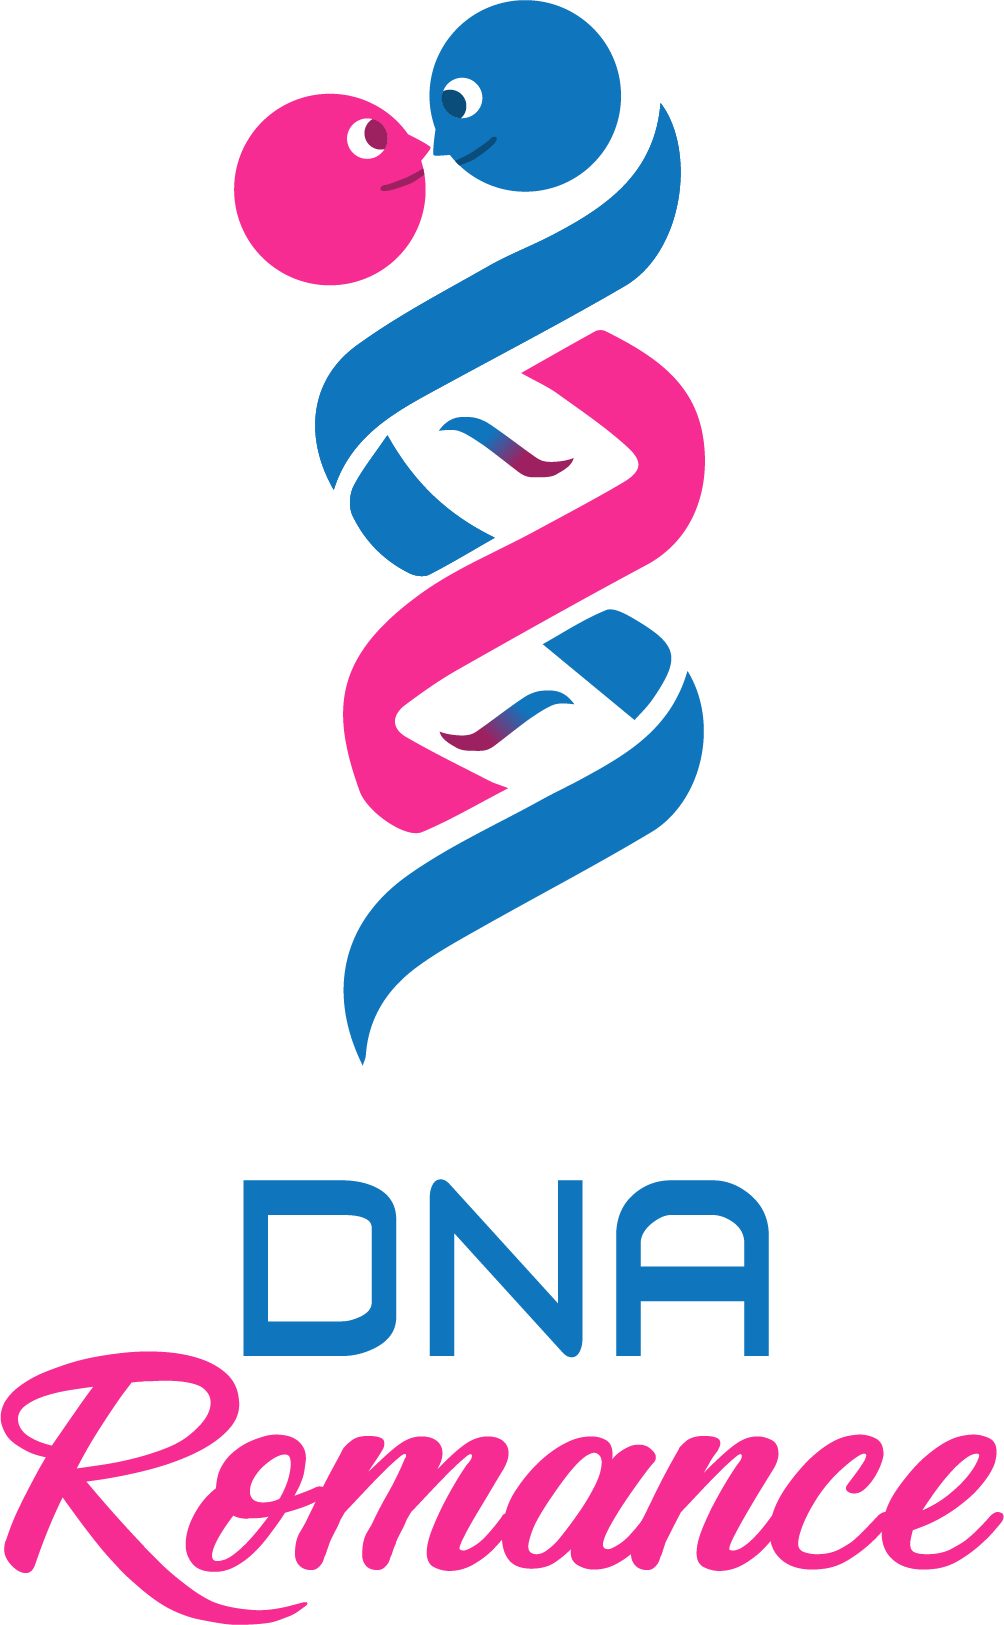 dating DNA